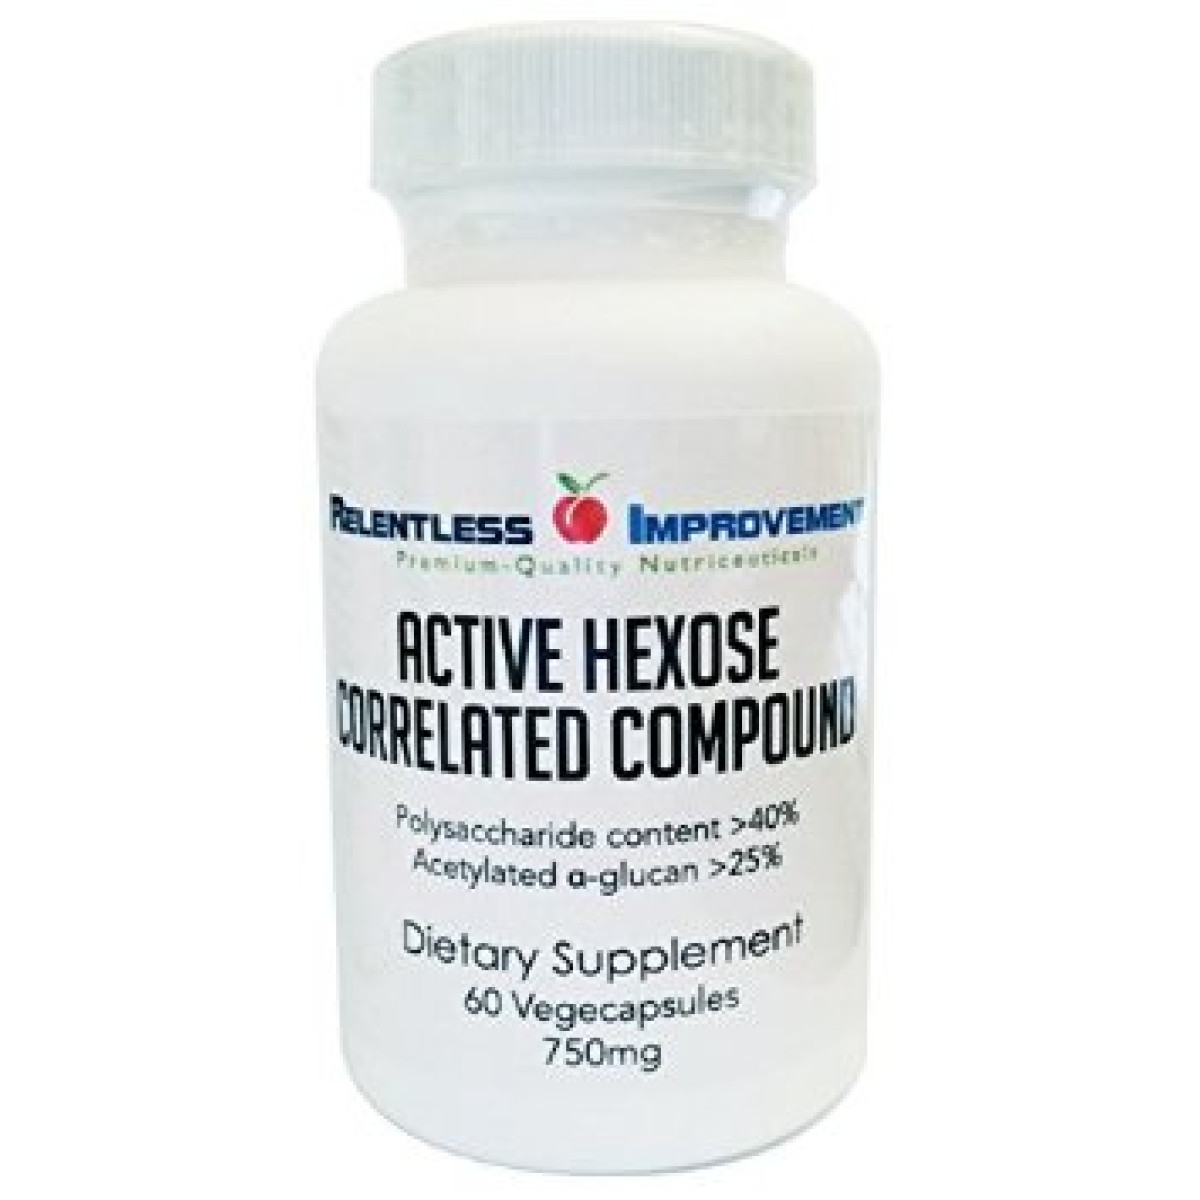 Relentless Improvement Active Hexose Correlated Compound  Compare to AHCC  brand products